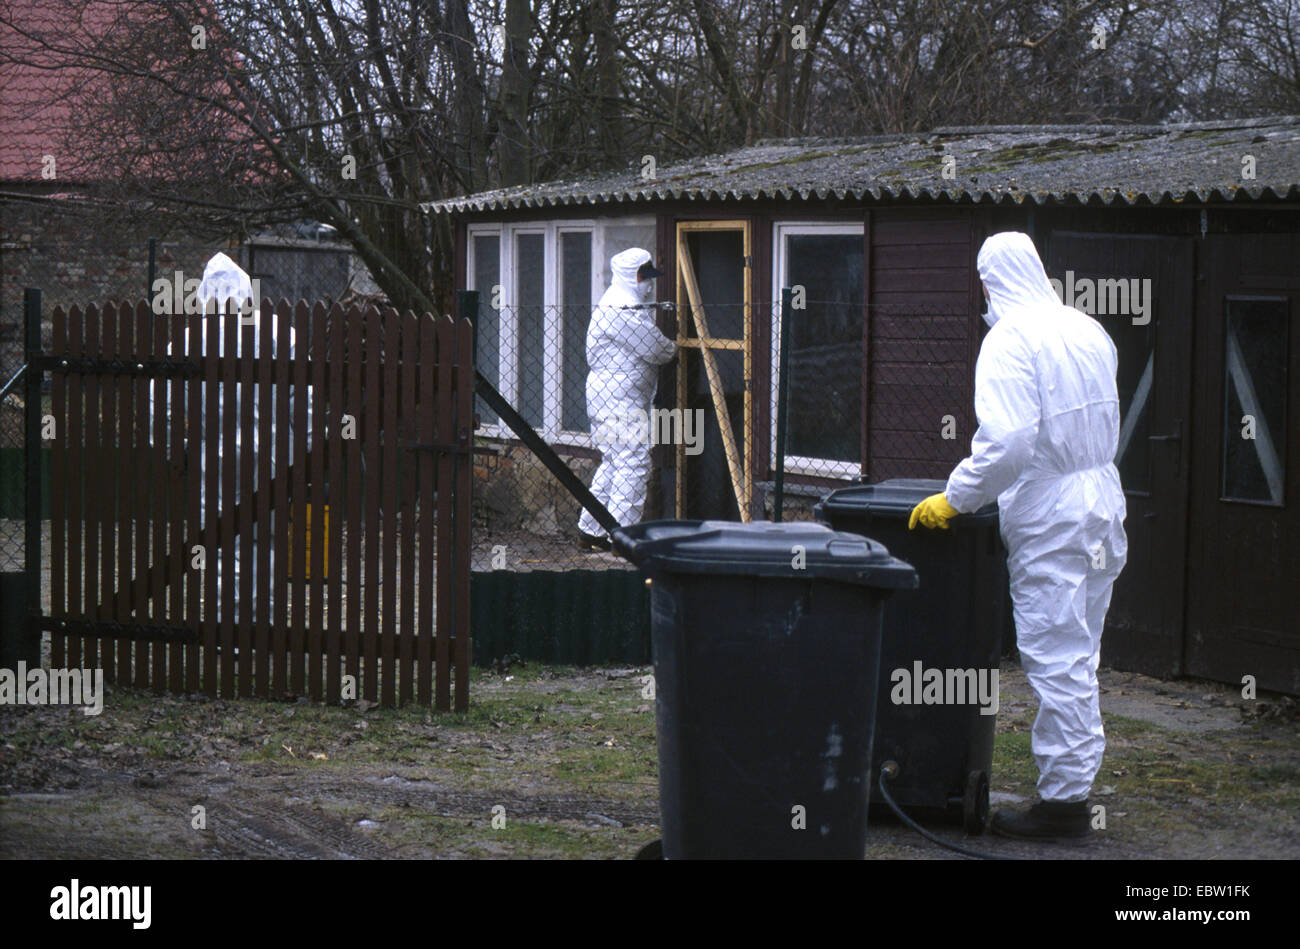 three epidemiologists in protective suits on a farm hit by the bird flu, Germany, - Stock Image